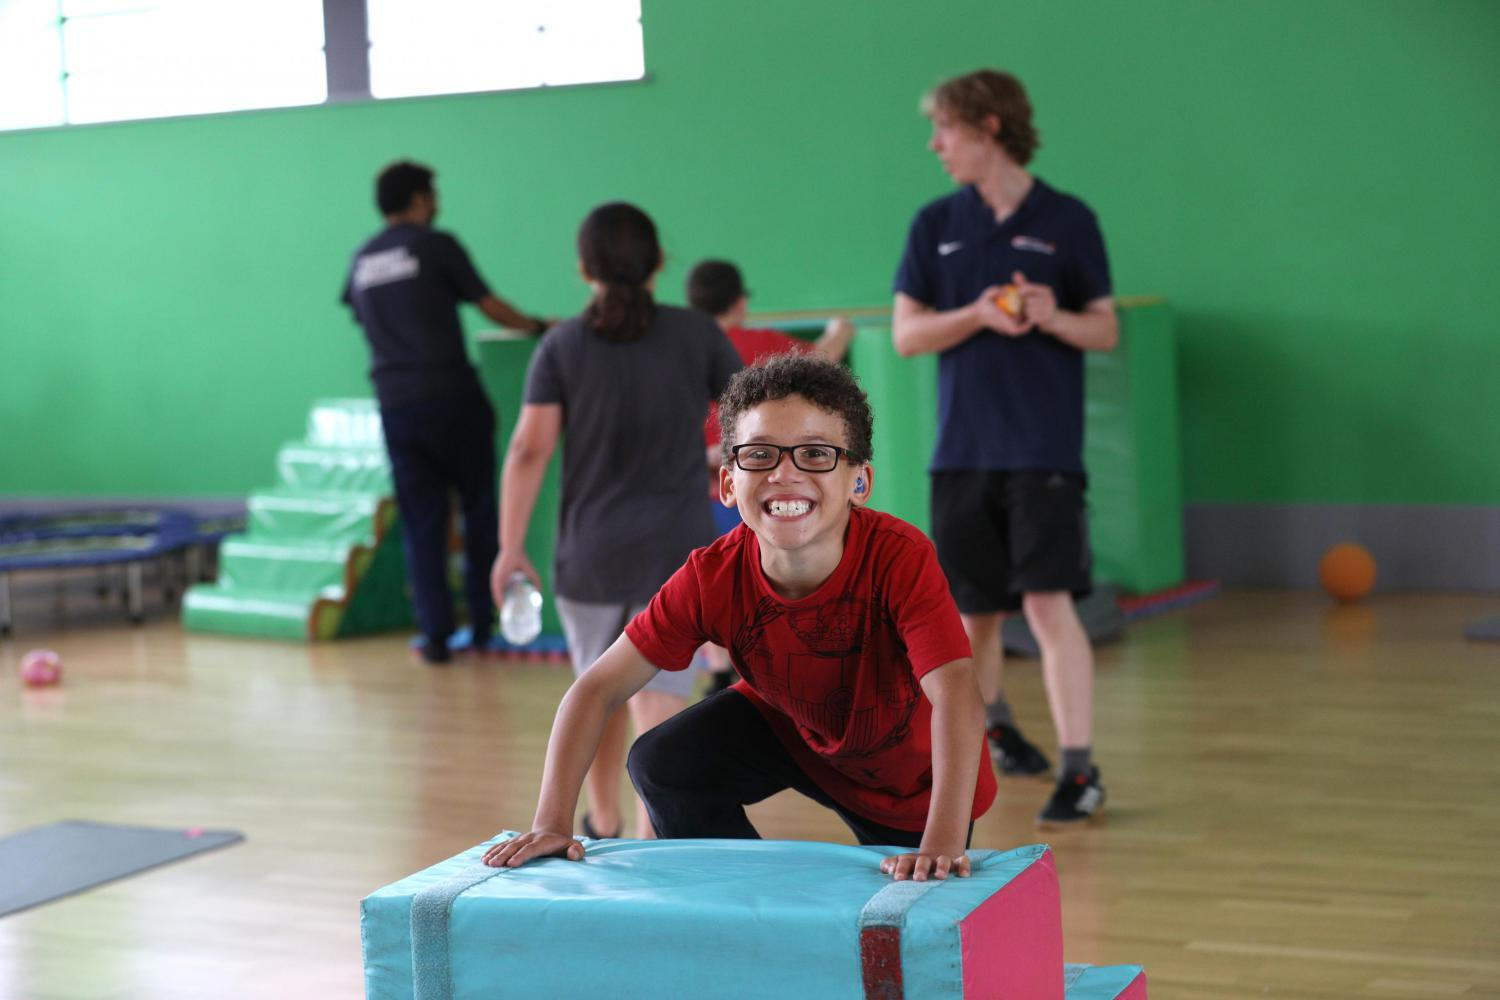 Disability Sports Coach Half term holiday activities October 2019 Poplar Baths for all disabled children